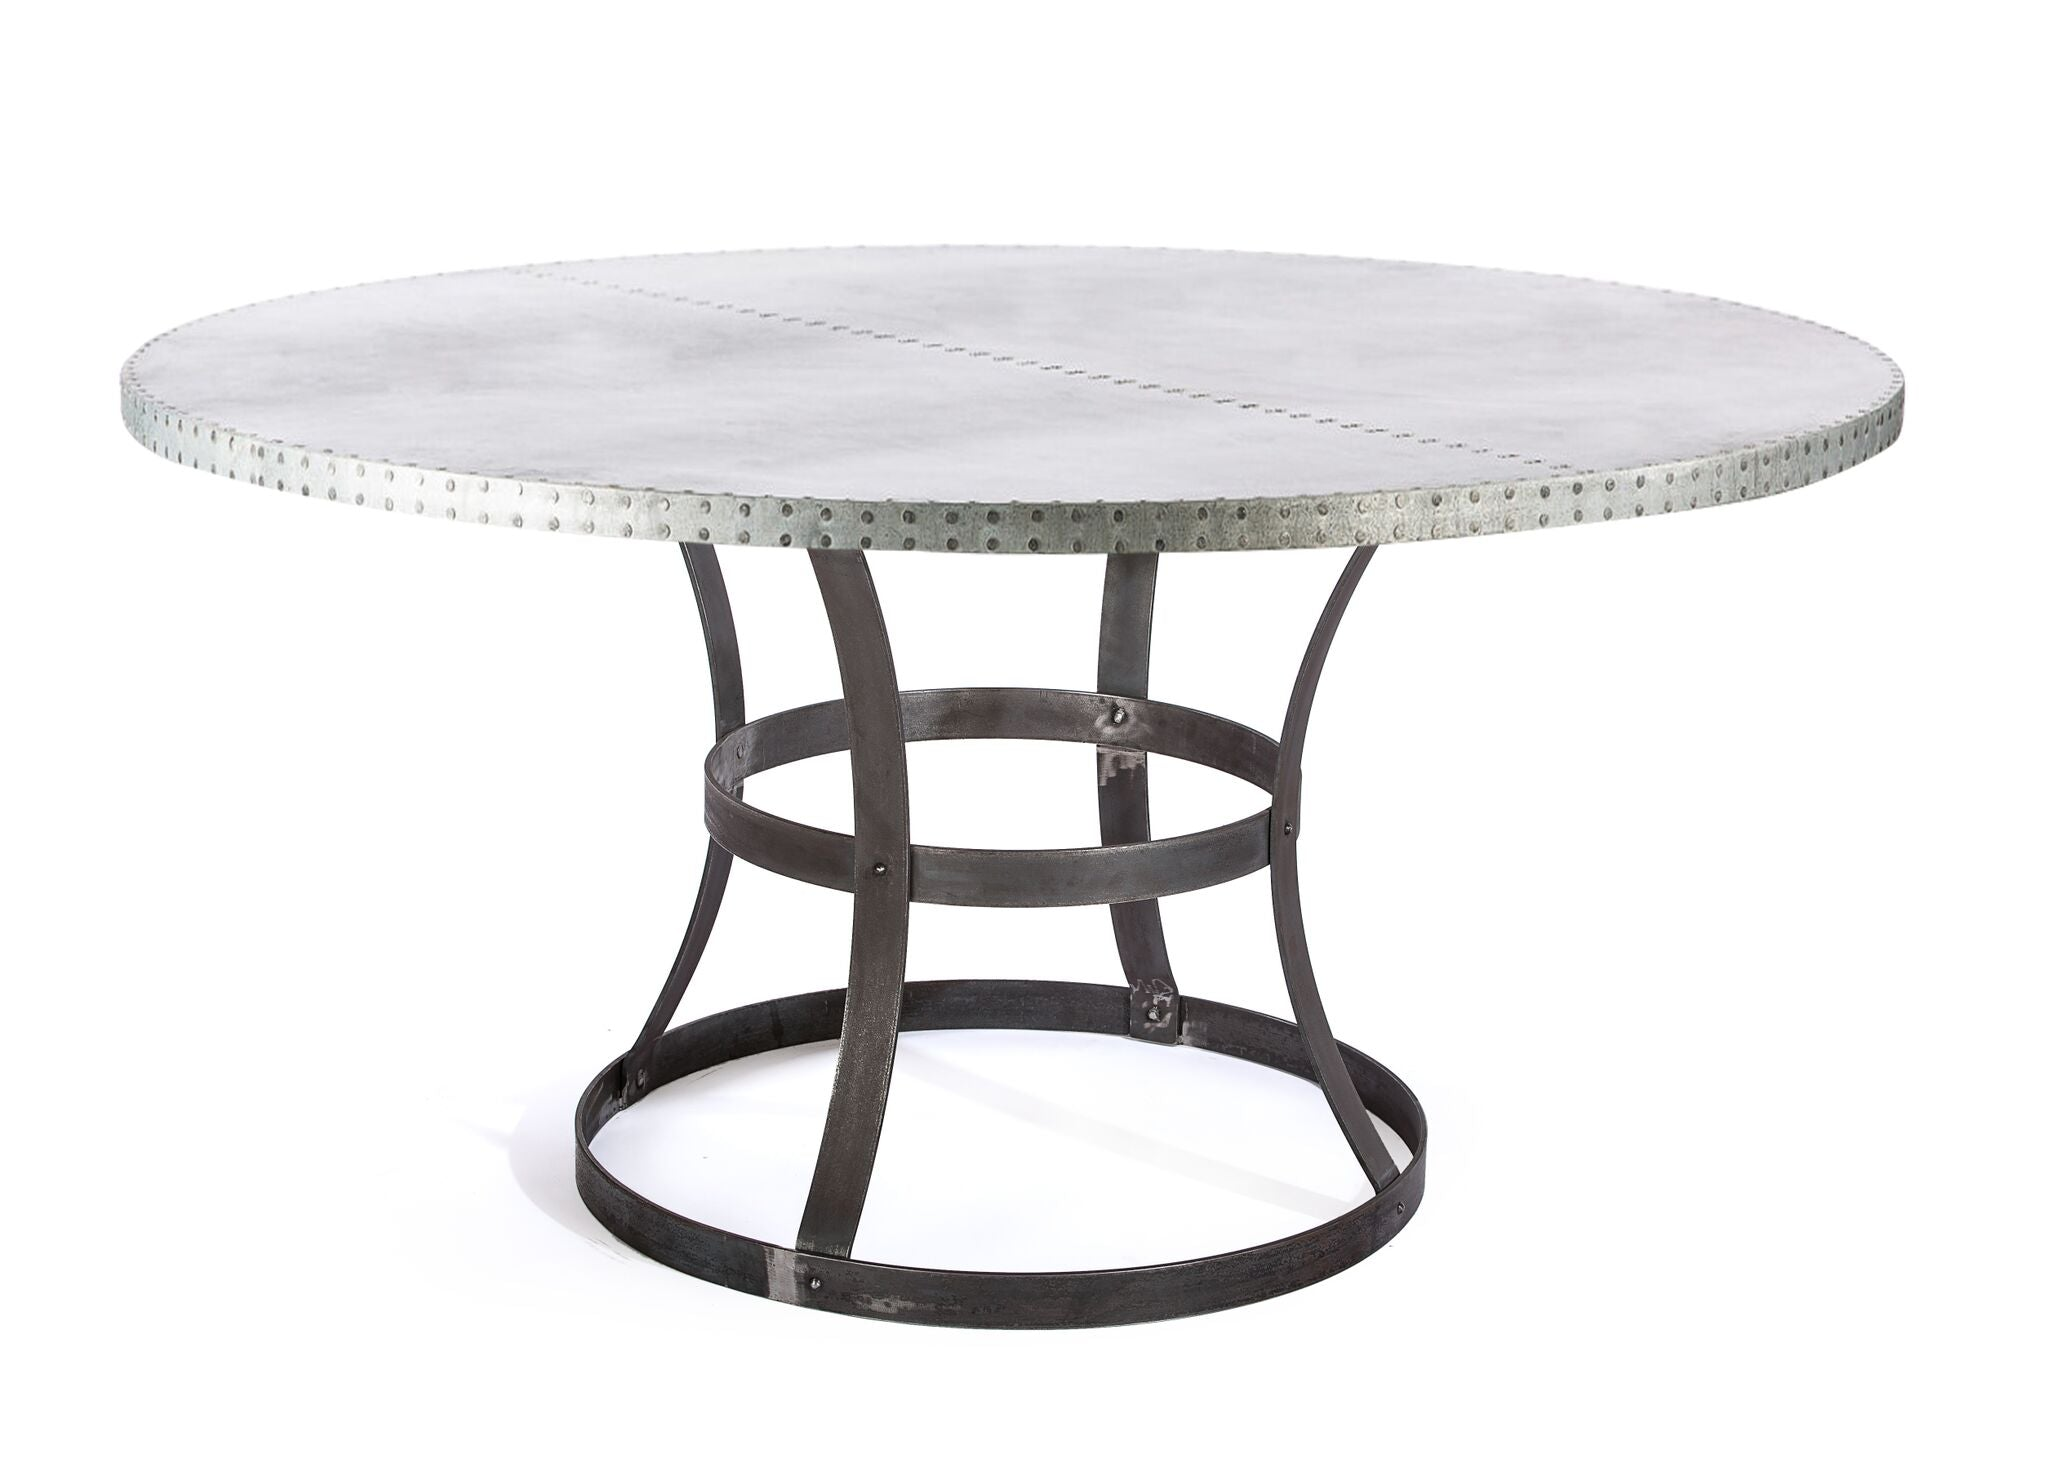 "Zinc Round Tables | Madera Table | CLASSIC | Natural Steel | CUSTOM SIZE D 48 H 30 | 1.5"" Standard 